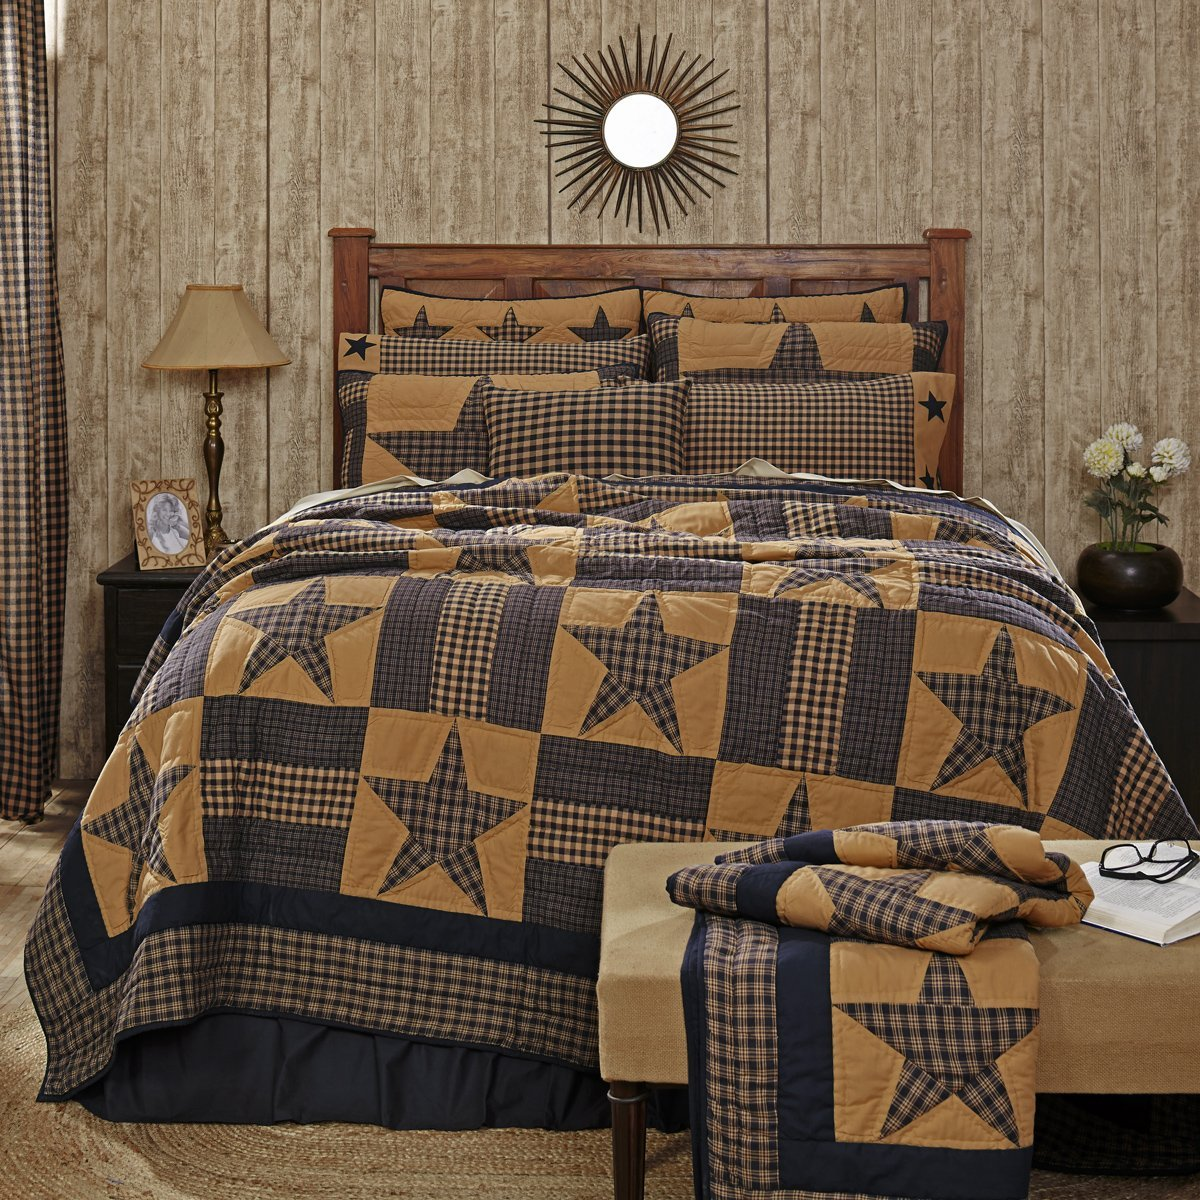 VHC Brands Teton Star Luxury King Cotton Quilt in Blue and Tan 19850